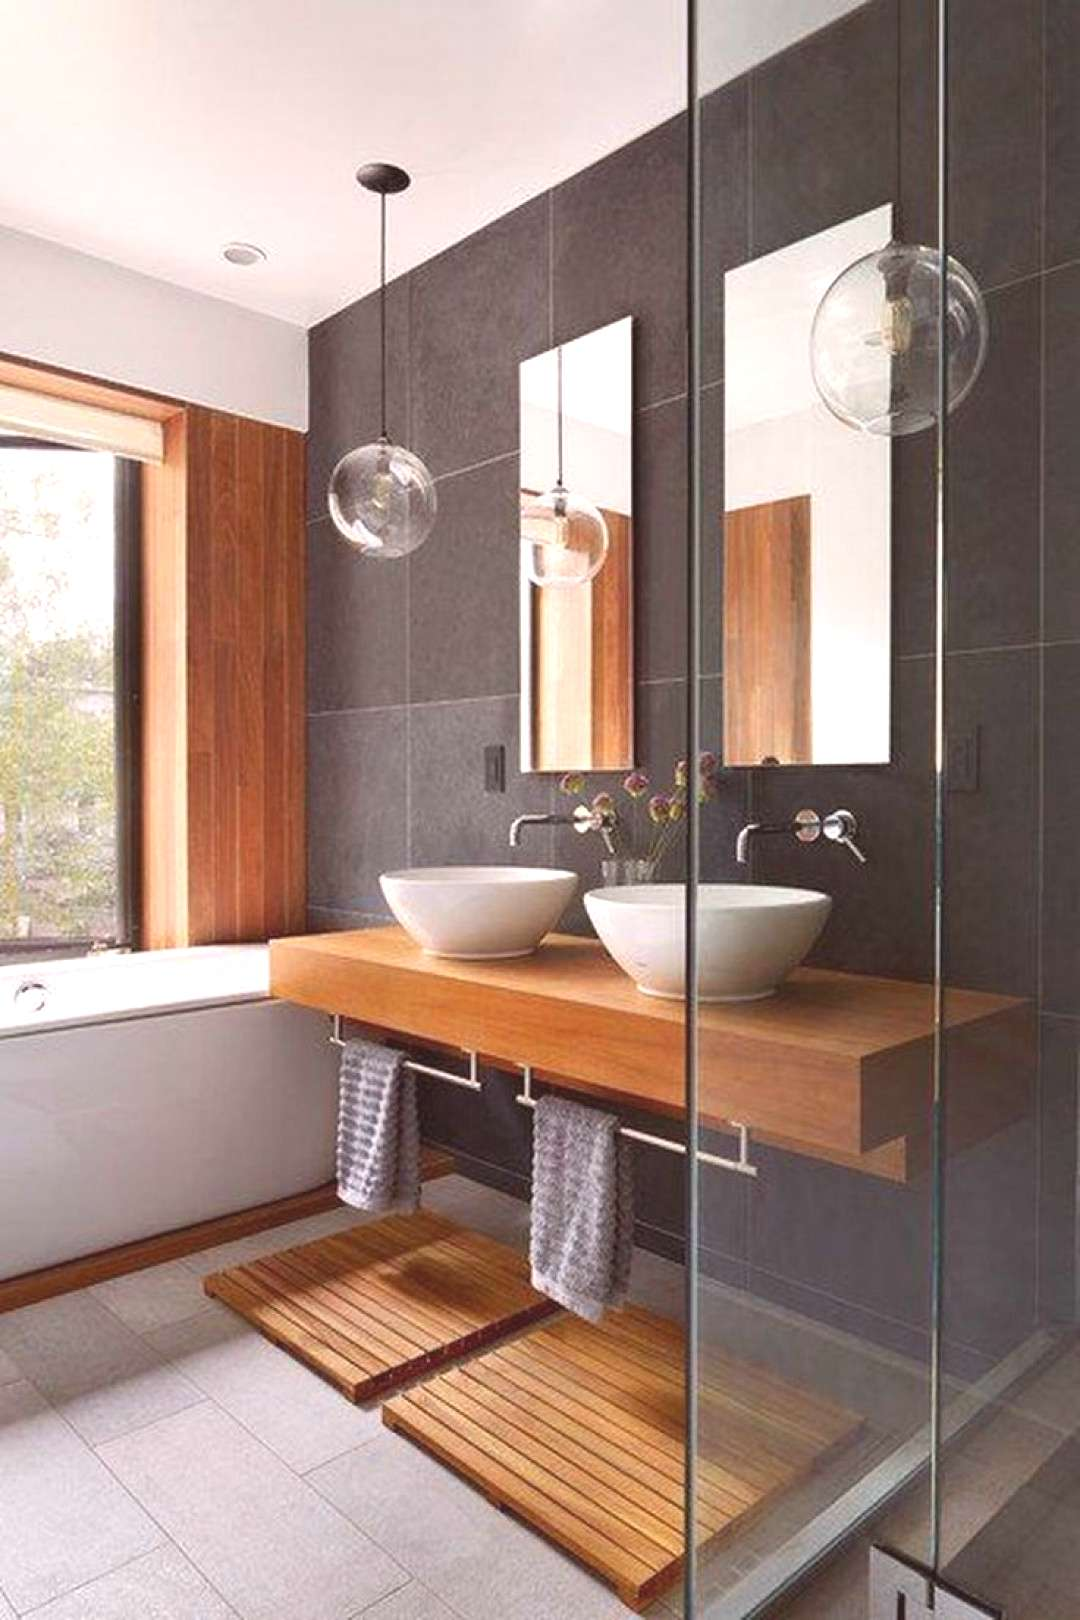 Fantastic Snap Shots Contemporary Bathroom towels Suggestions Love the appearance of an up to date